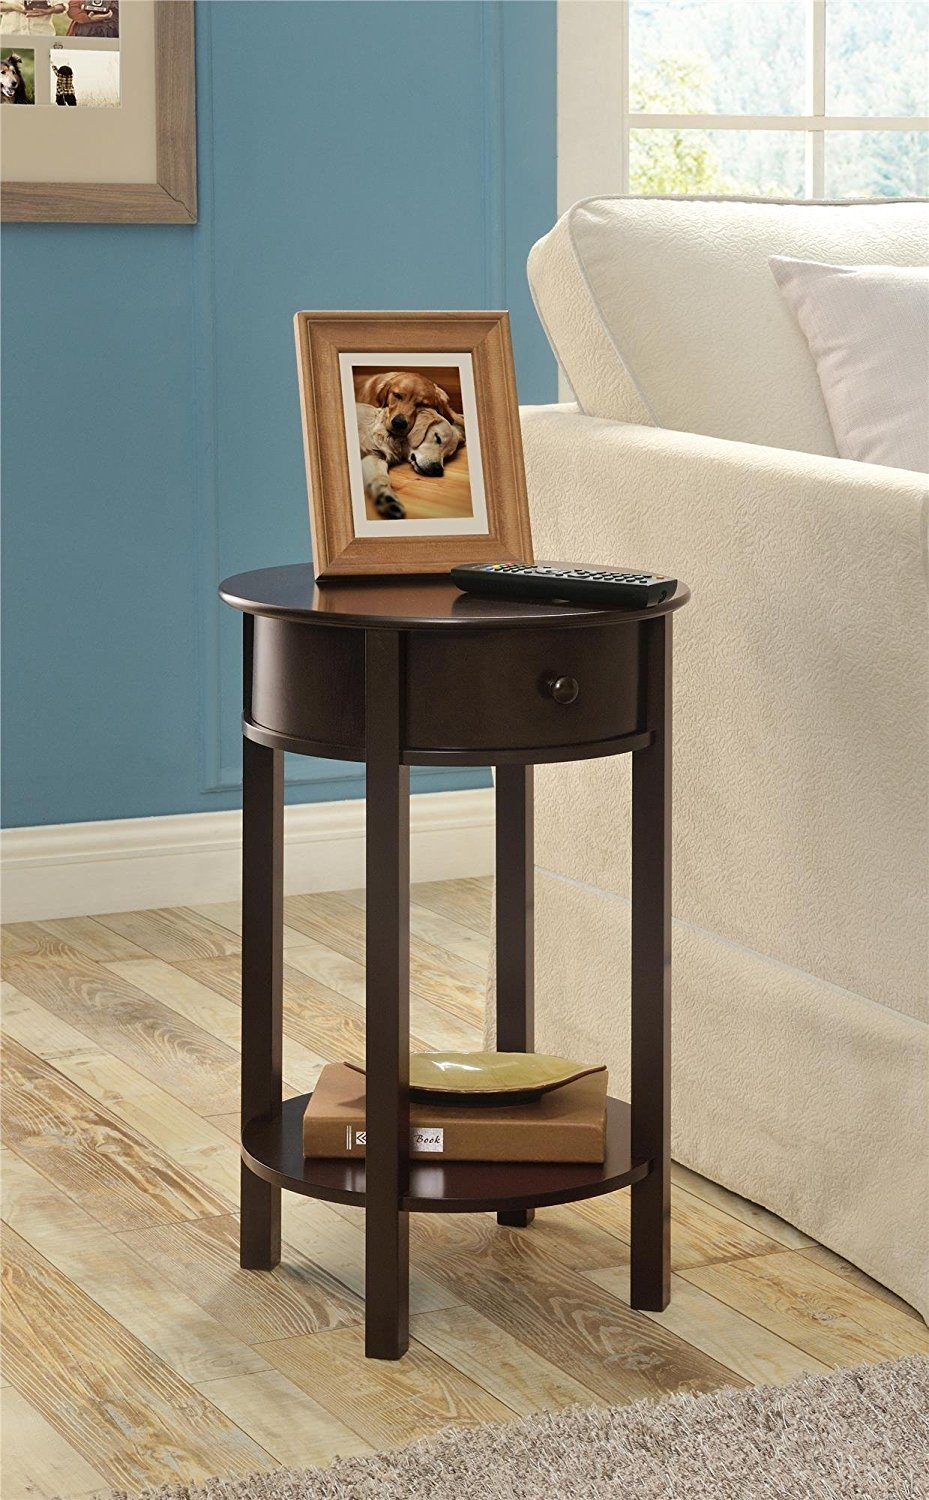 Indoor Multi-function Accent table Study Computer Desk Bedroom Living Room Modern Style End Table Sofa Side Table Coffee Table Round Accent Table